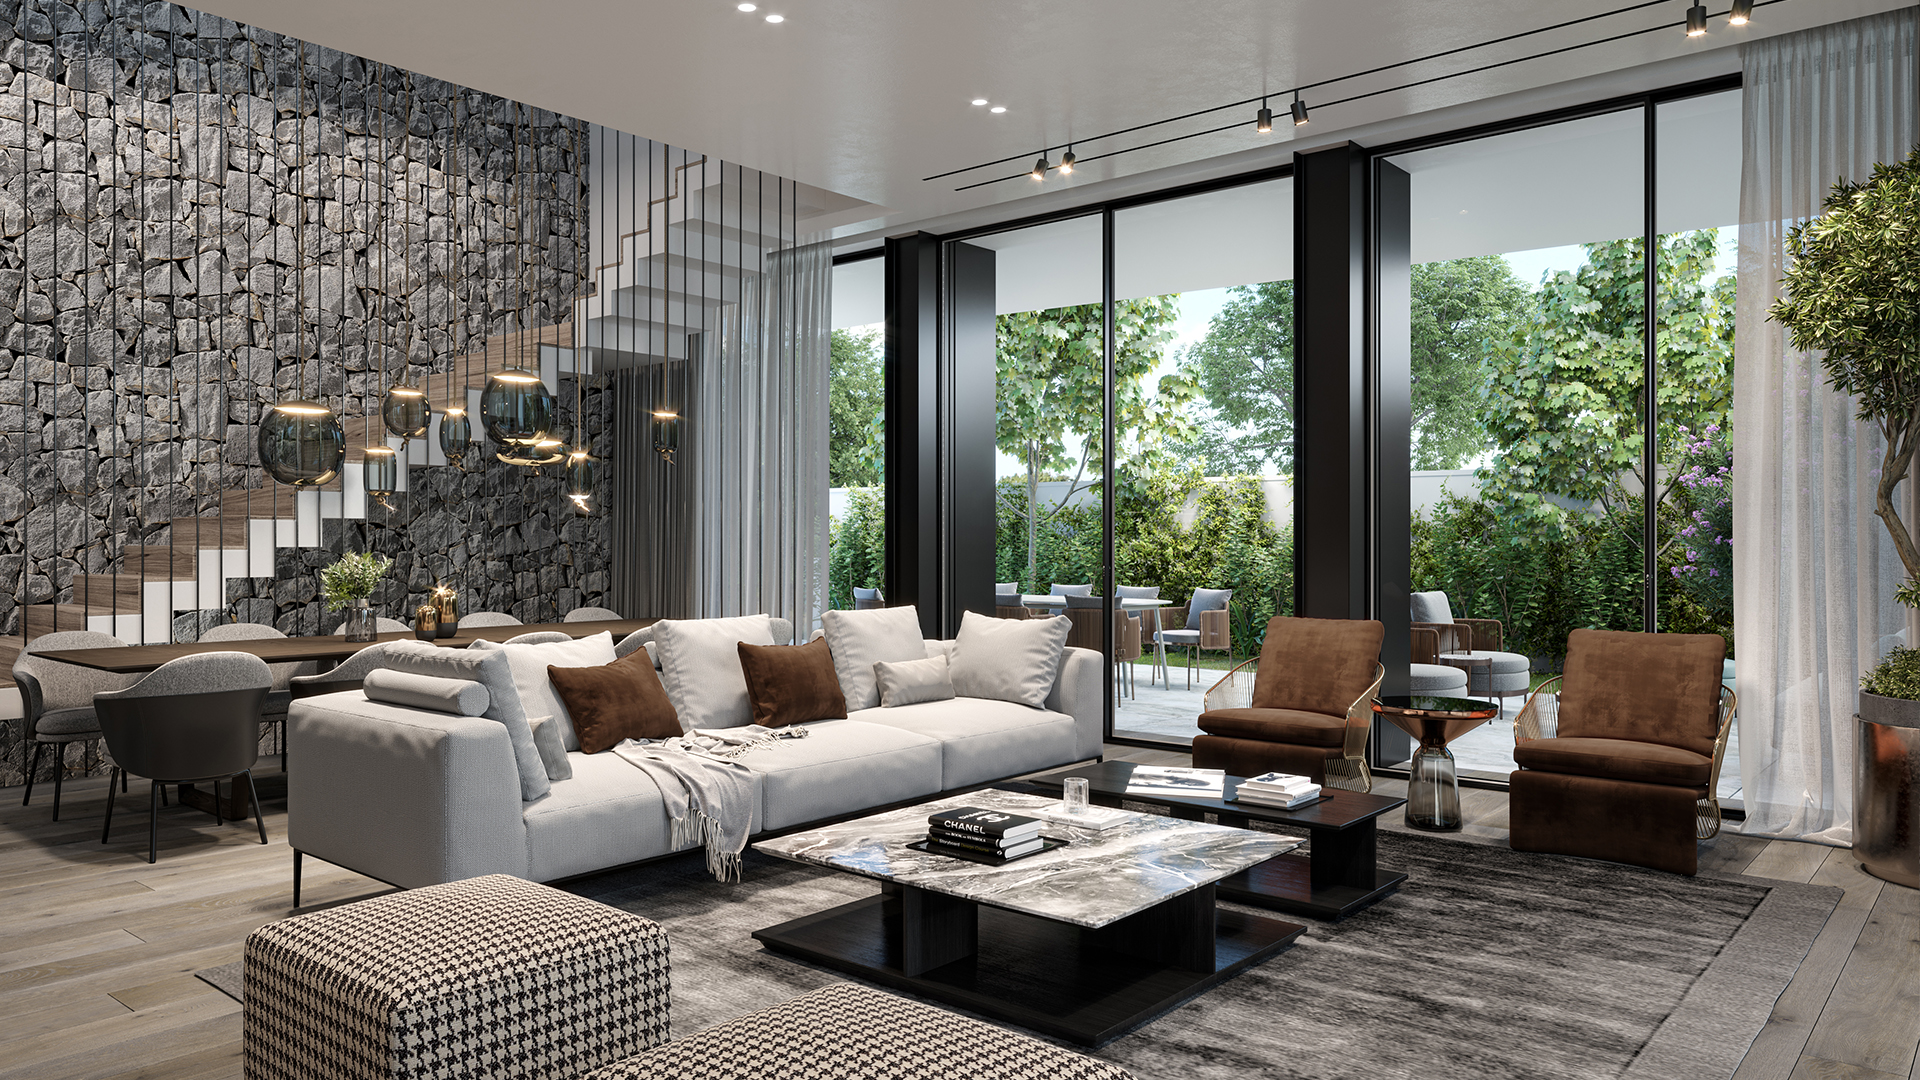 Maayan-Golan_Architectural-Visualization_interior-render_private-residential_living-room_interior-design-by-sharon-maayan_03